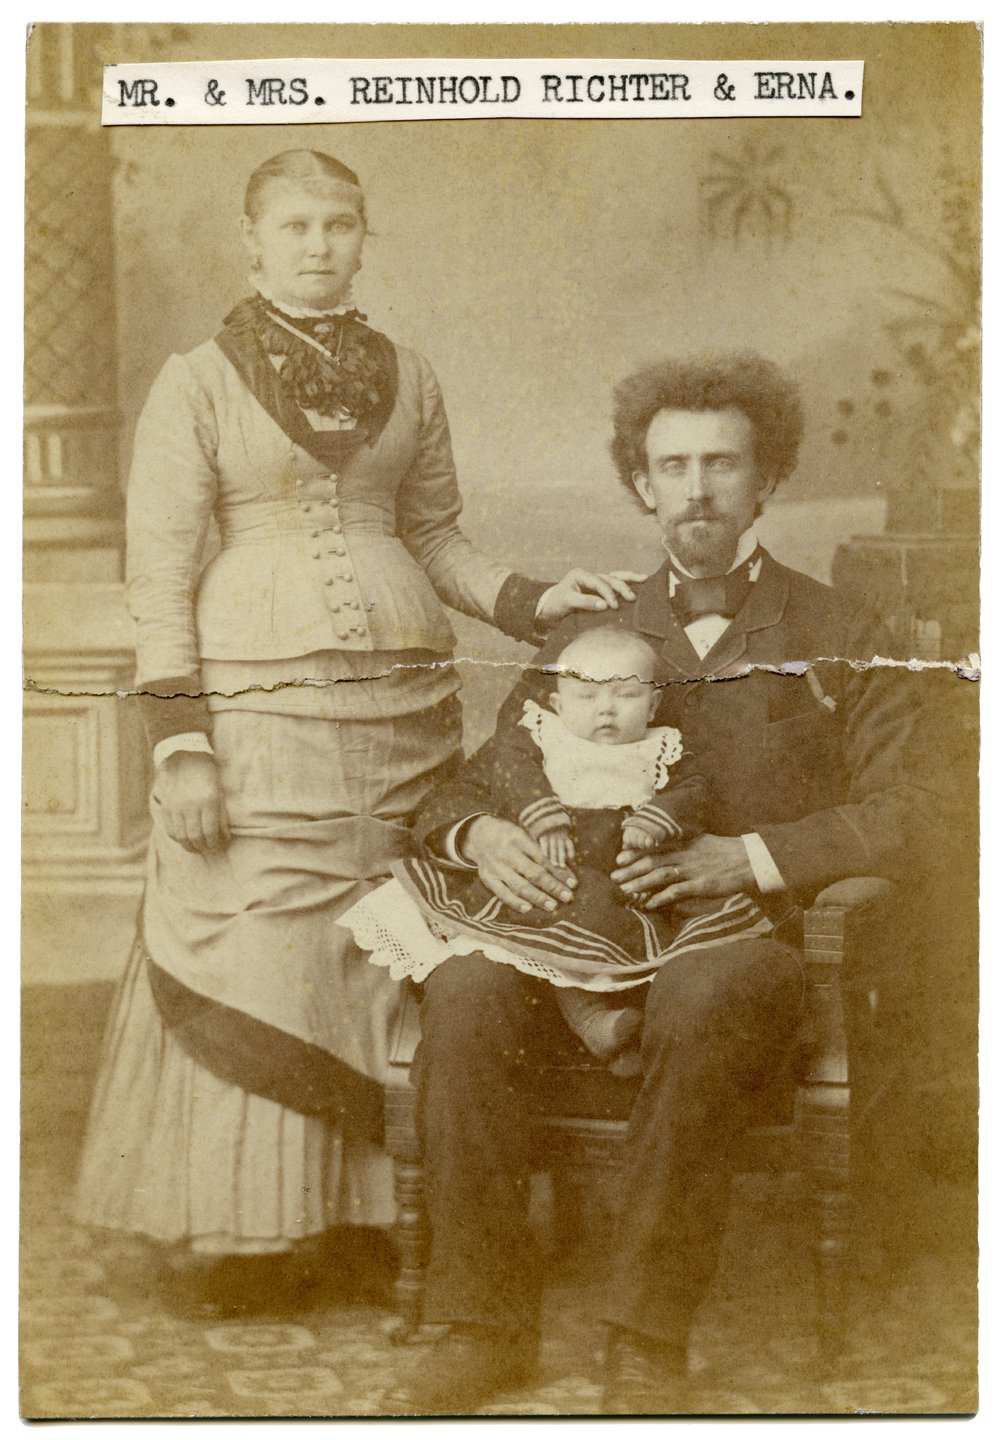 Reinhold Richter family in Alma, Kansas - 1